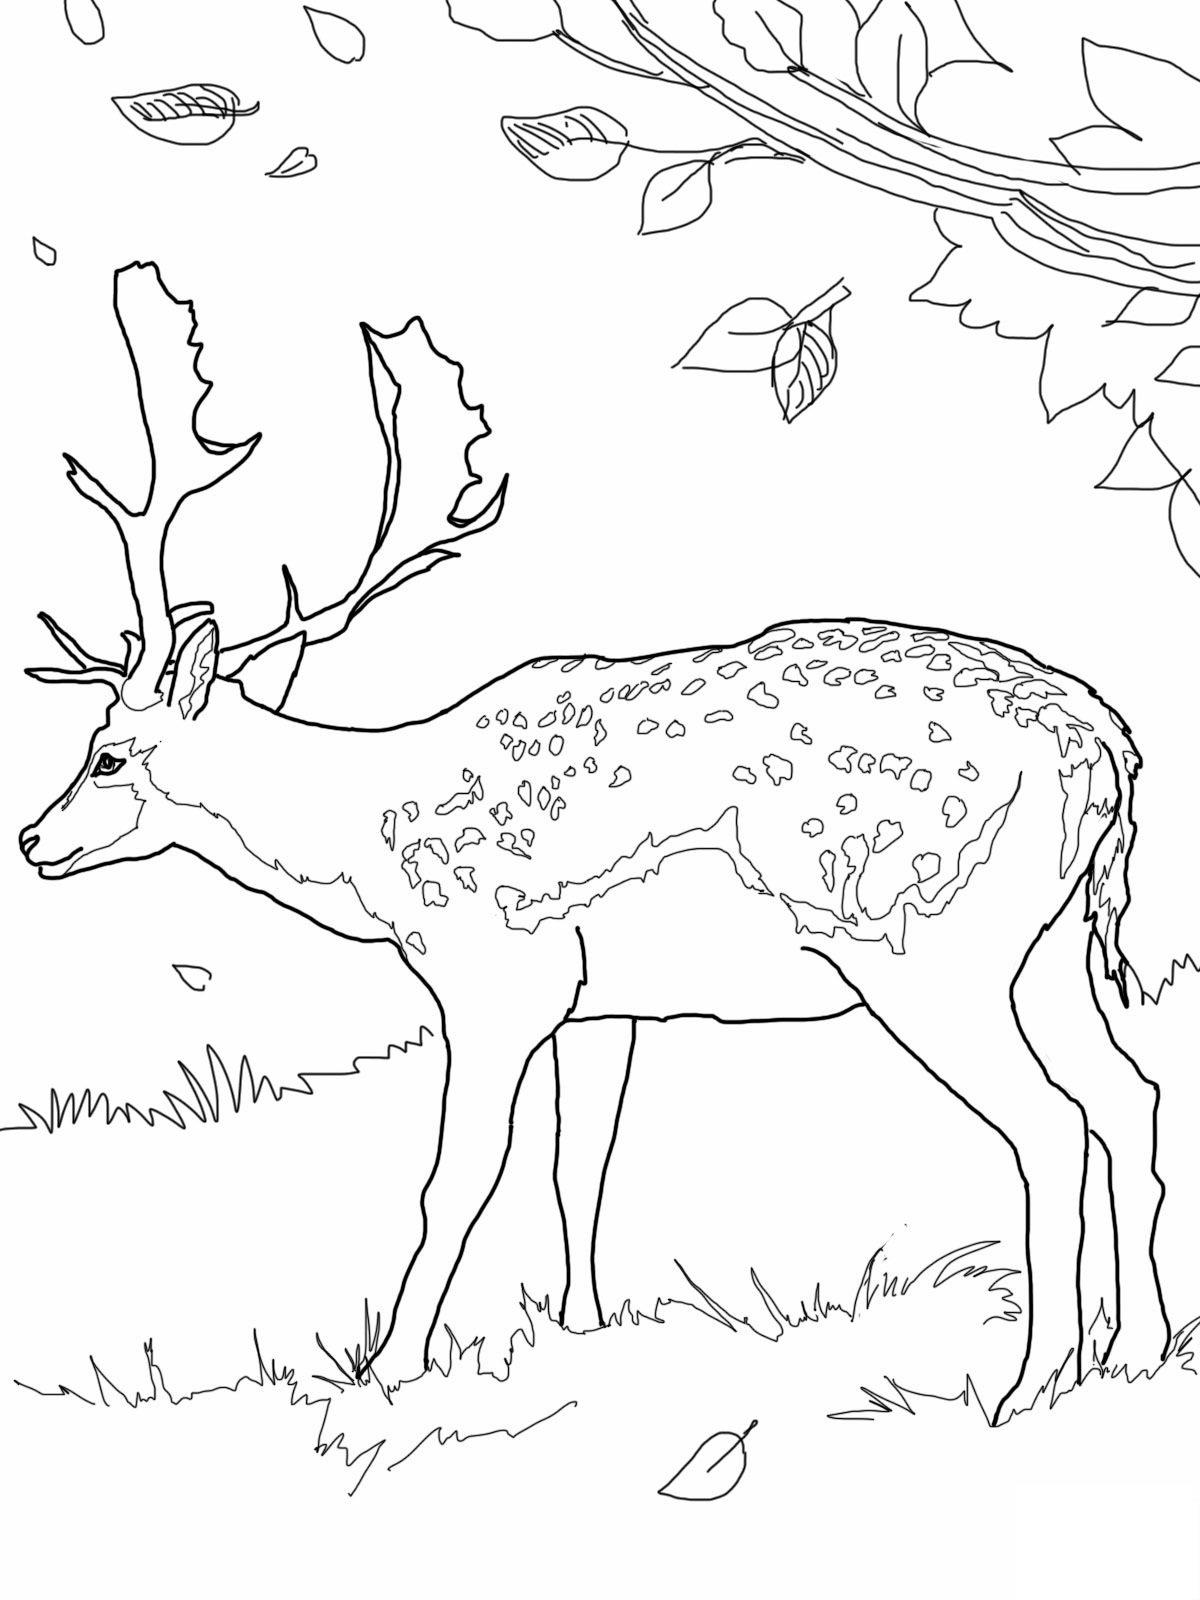 free printable deer coloring pages for kids rh bestcoloringpagesforkids com coloring pages for kids dental coloring pages for kids dental